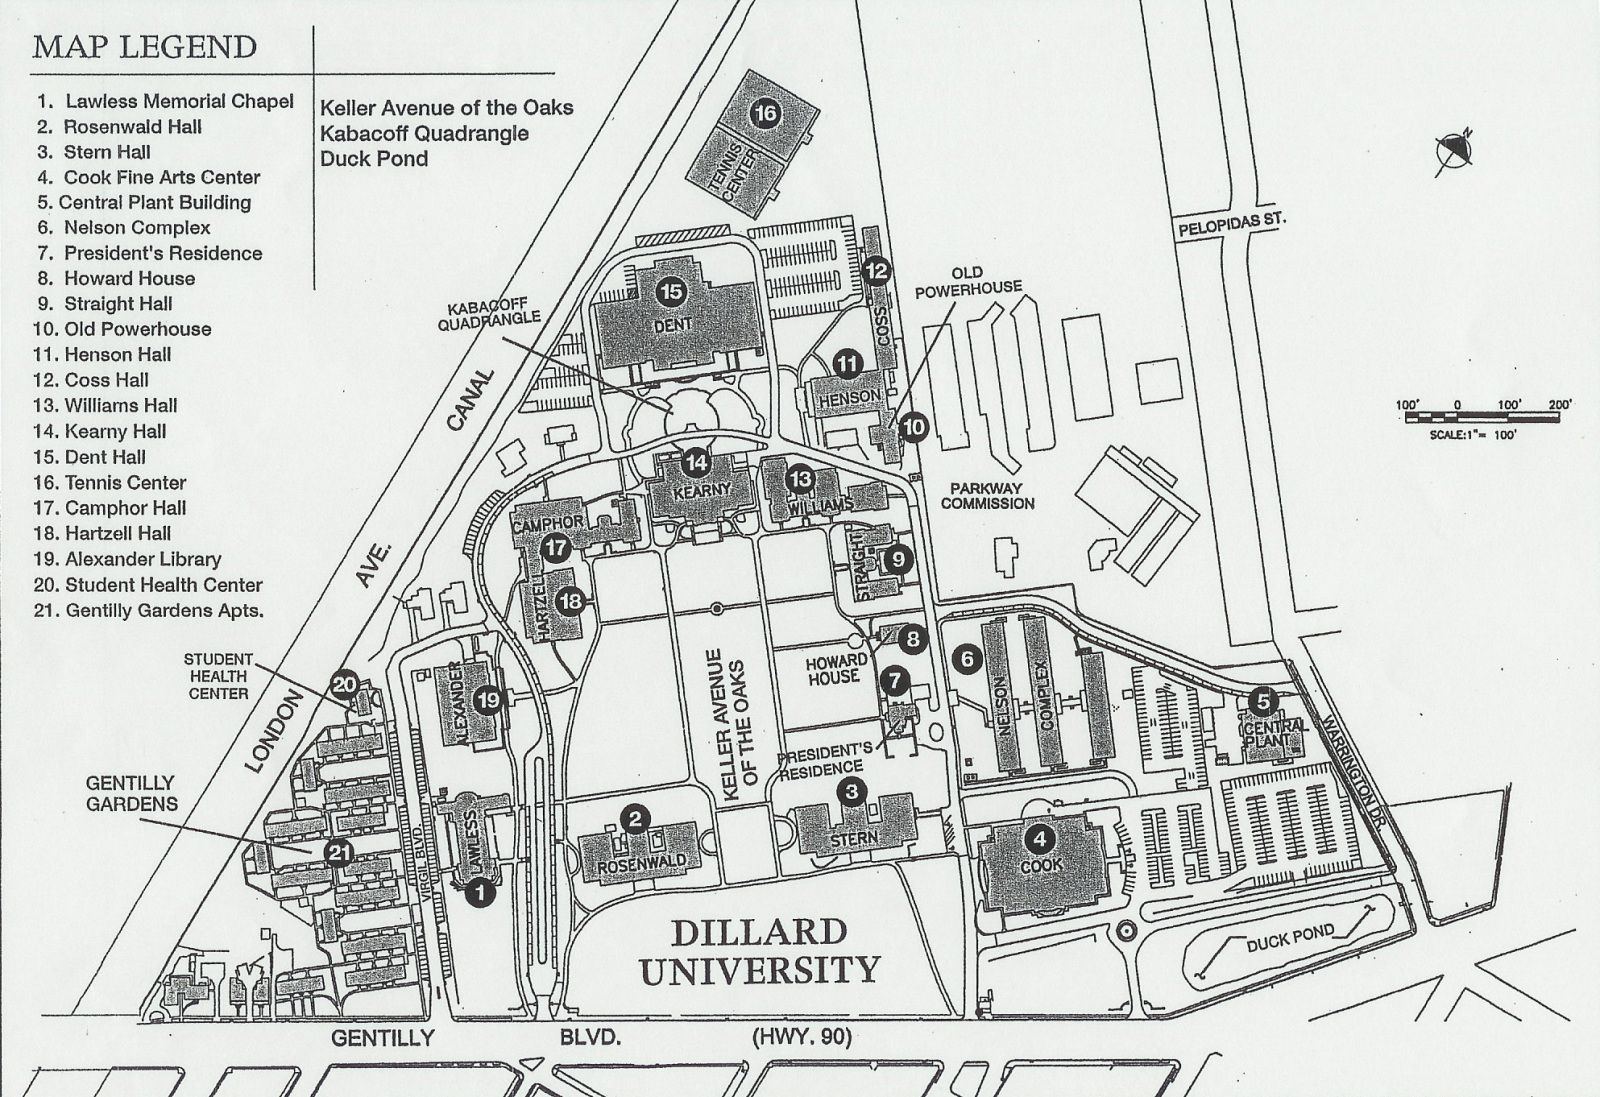 Langston University Campus Map.Campus Map Dillard University Hbcus Oklahoma Missouri Arkansas